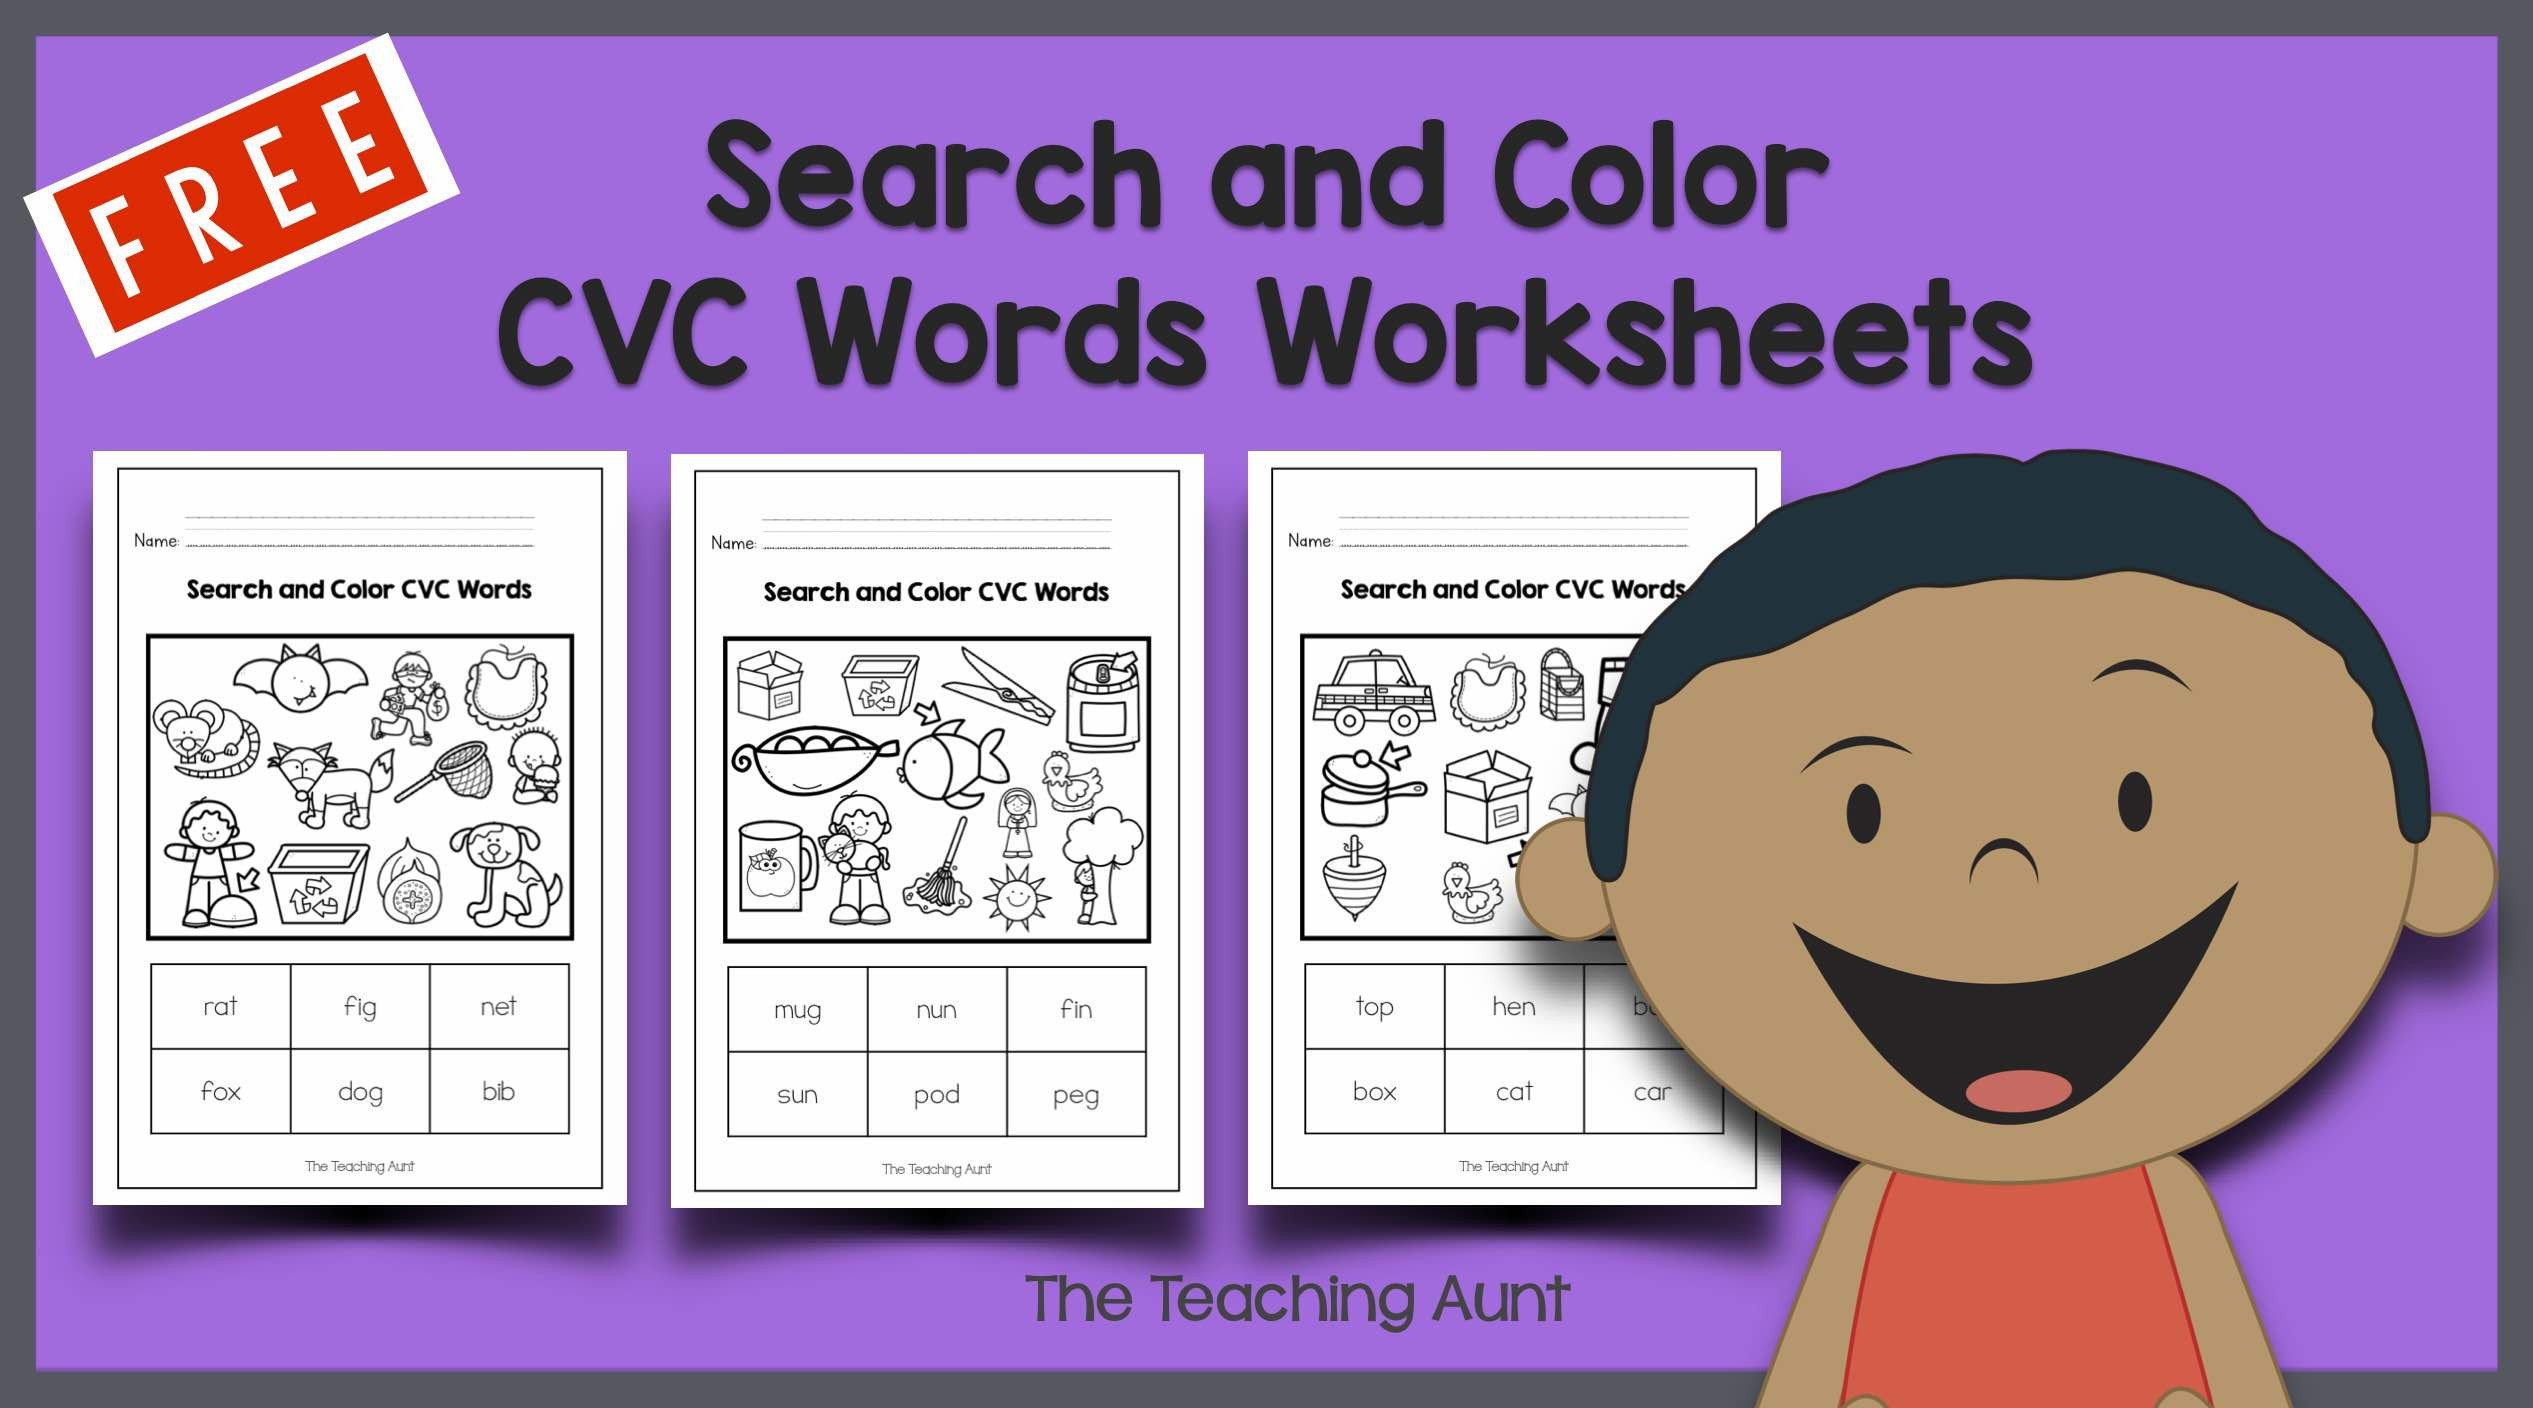 Cvc Words Worksheets Pdf Search and Color Cvc Words Worksheets the Teaching Aunt